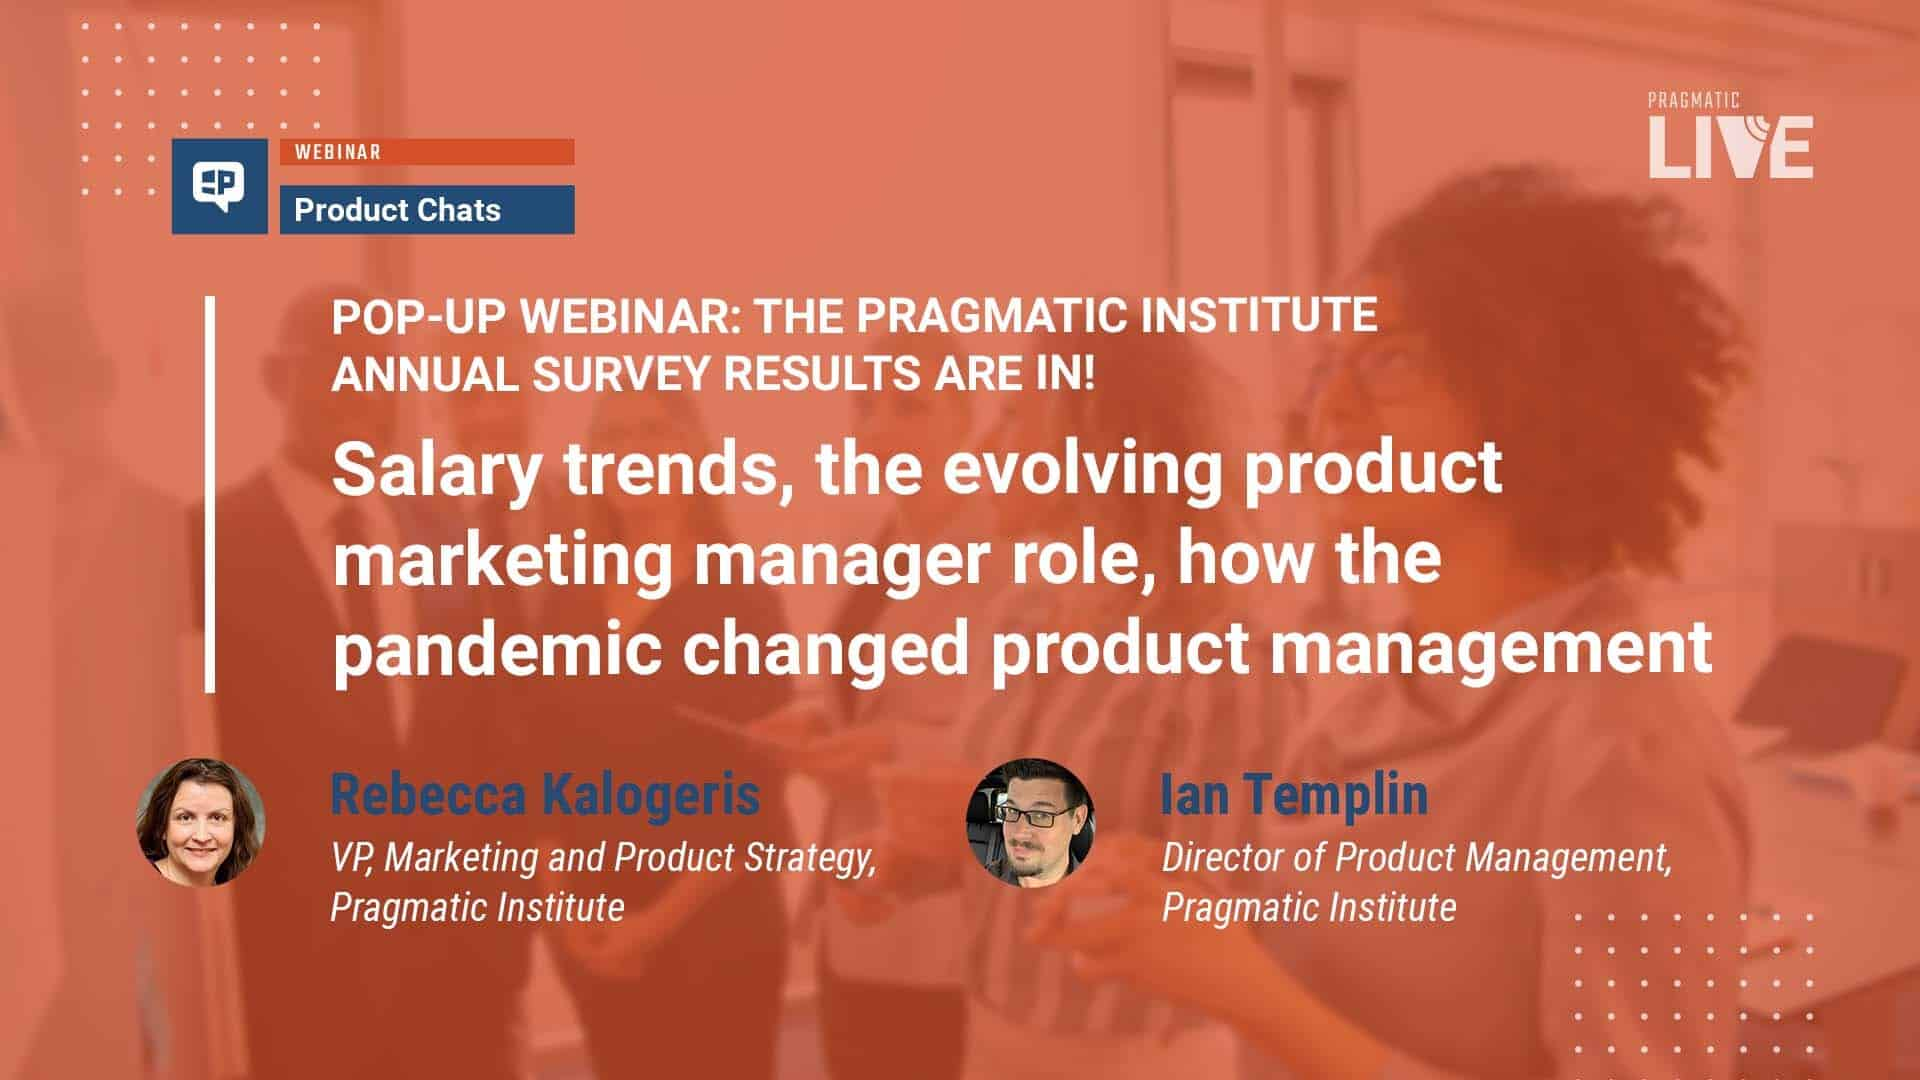 The Pragmatic Institute Annual Survey Results Are In!